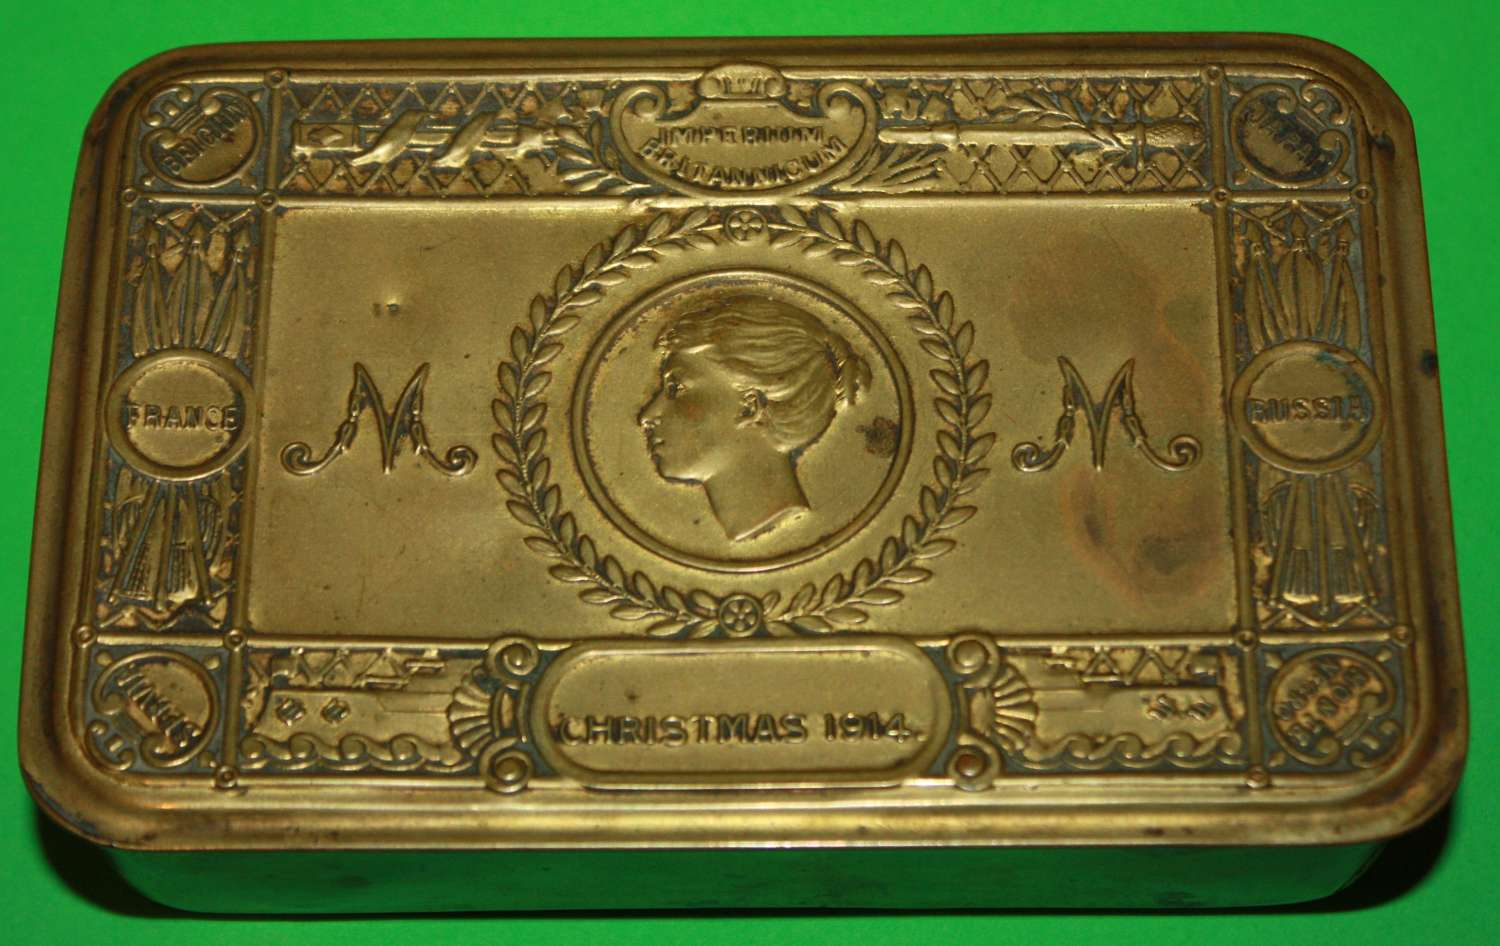 A GOOD USED WWI MARY TIN NO CRACKS TO THE CORNERS